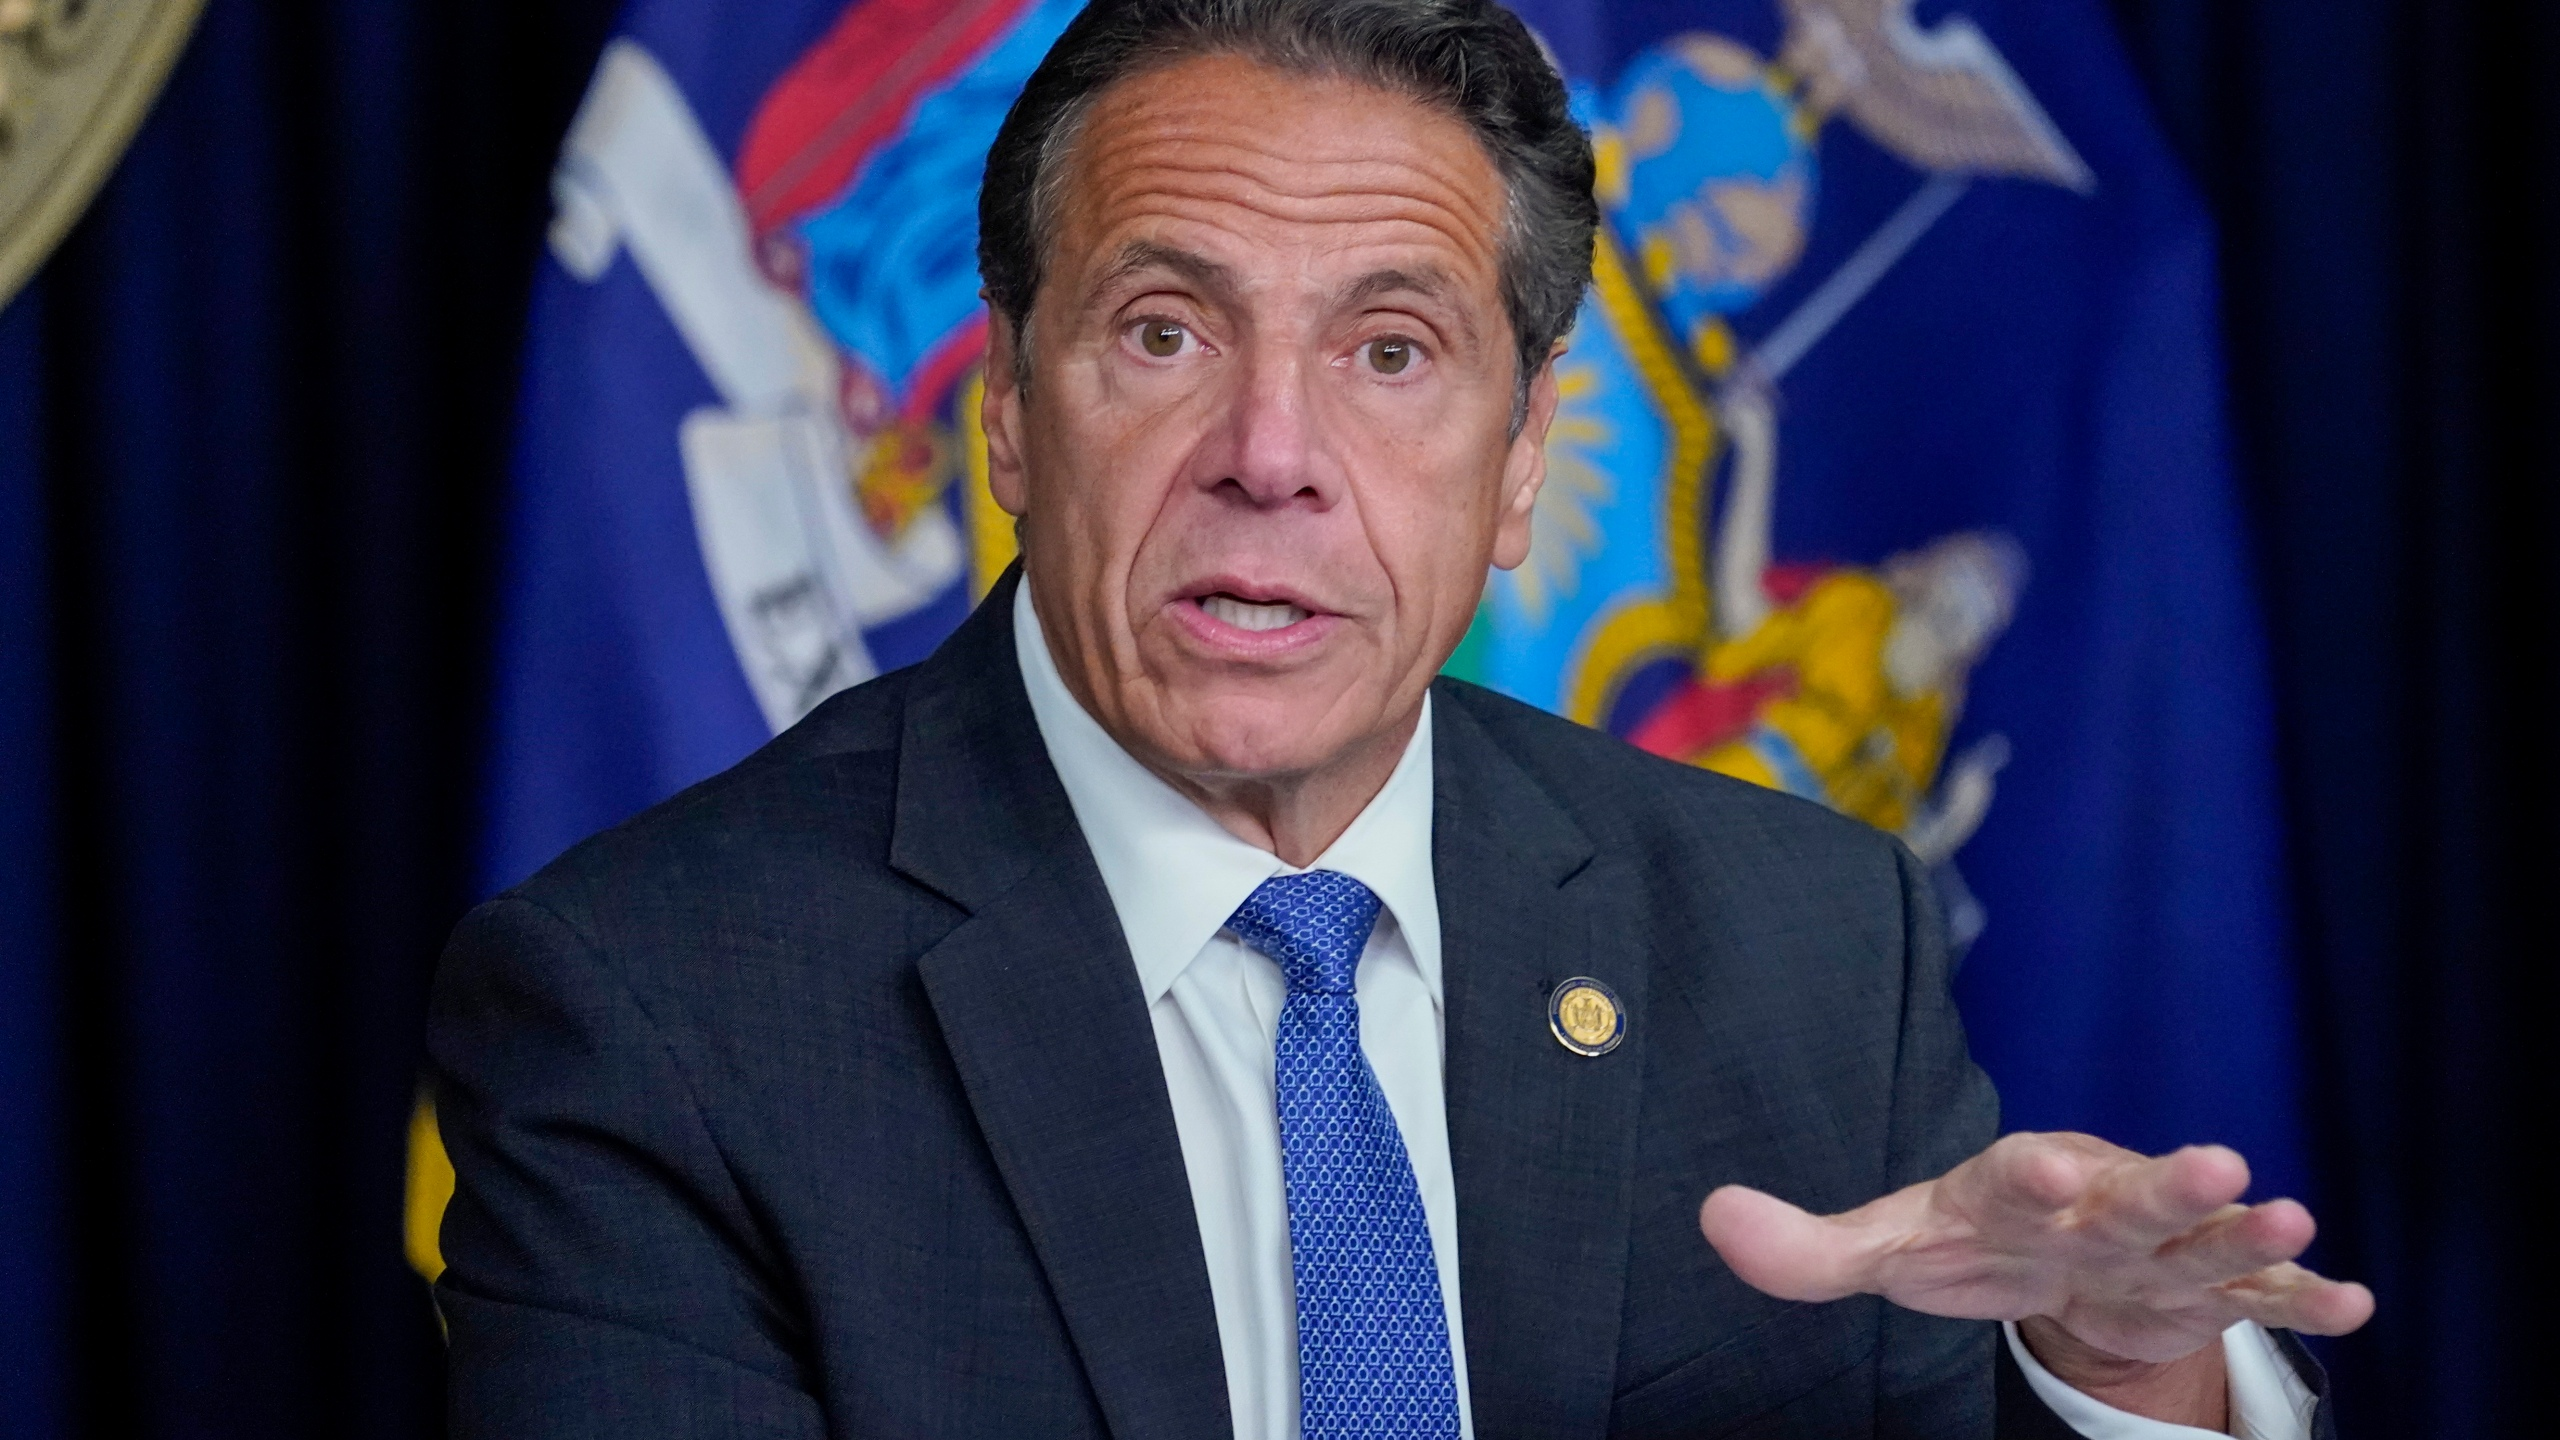 New York Gov. Andrew Cuomo speaks during a news conference in New York on June 23, 2021. (Mary Altaffer / Associated Press)